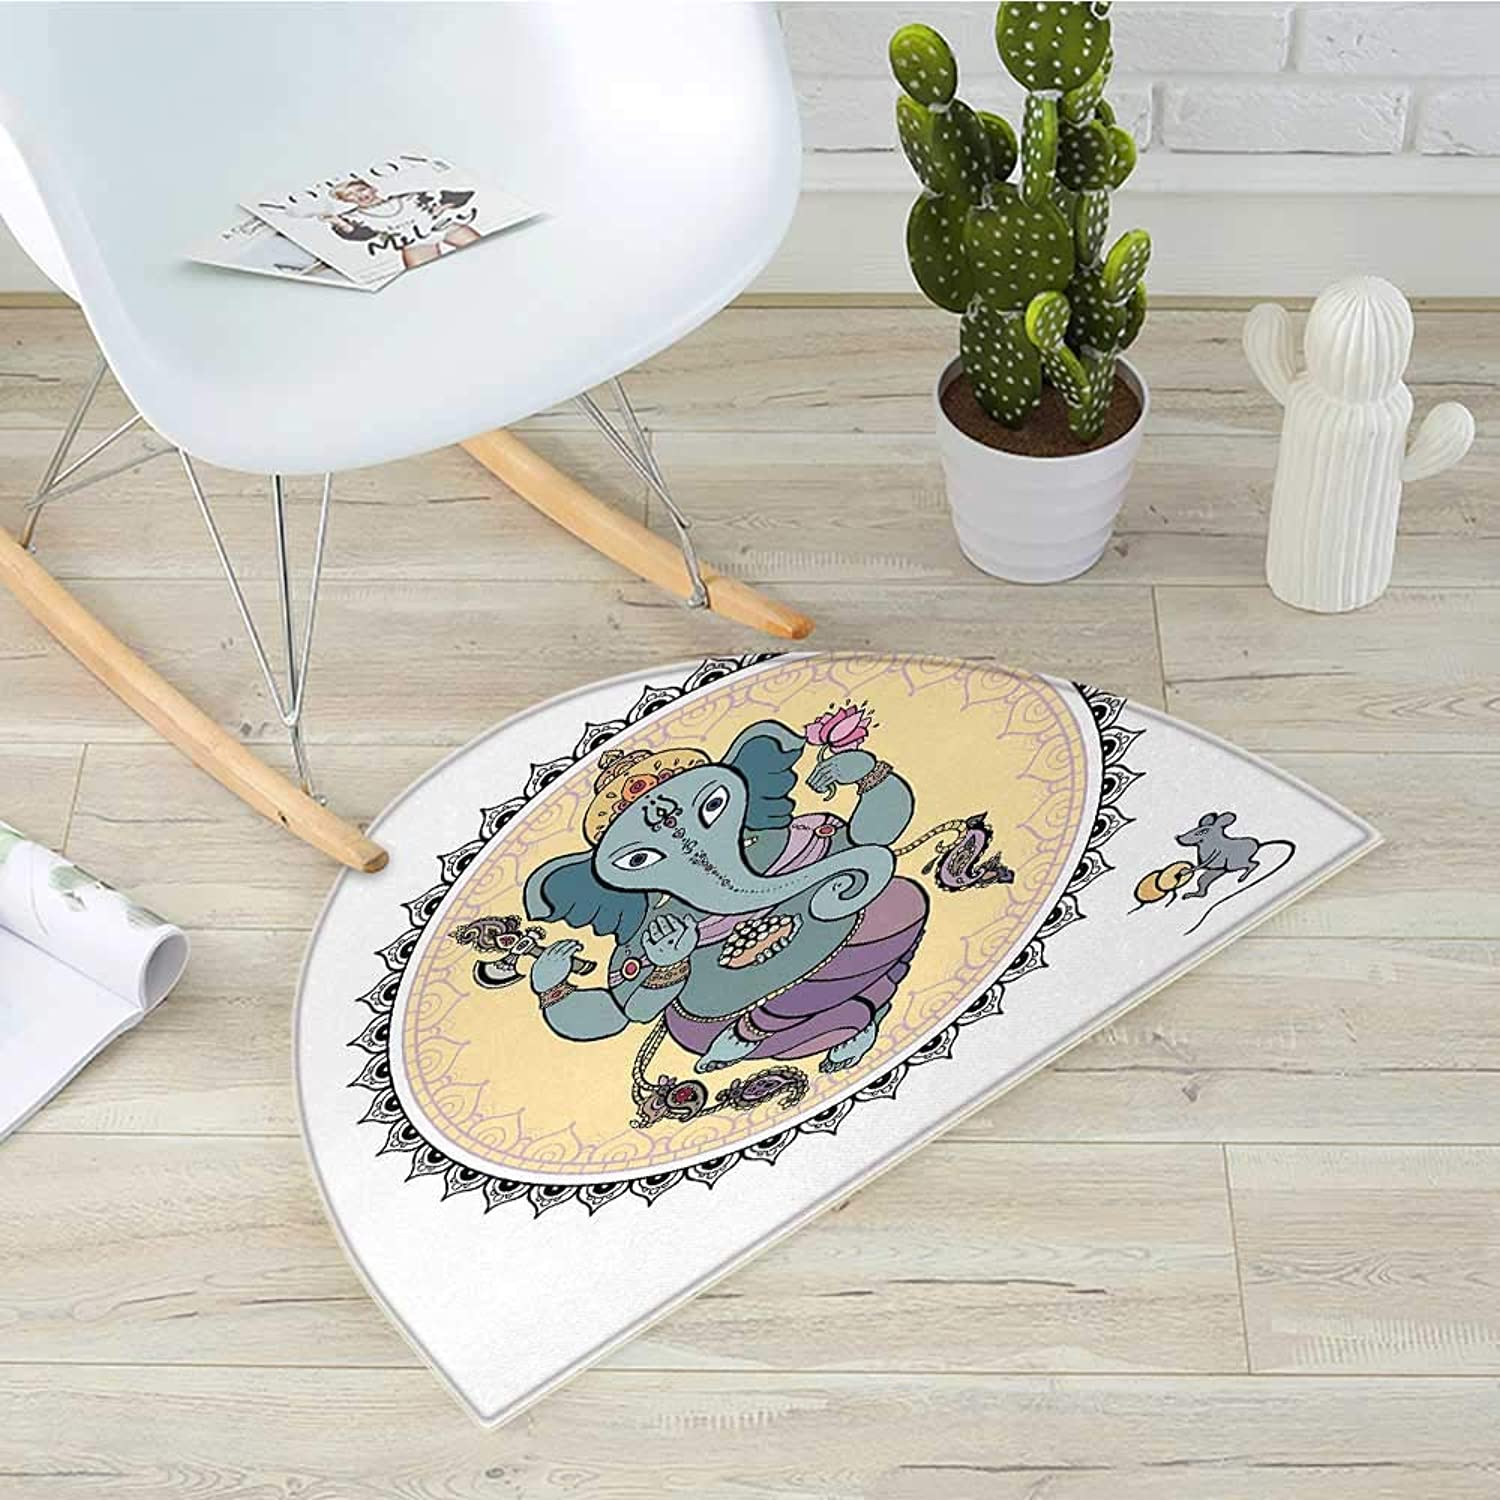 Hippie Semicircle Doormat Mandala Circle with Asian Ceremony Cultural Ritual and Search for Wisdom Concept Halfmoon doormats H 39.3  xD 59  Multicolor